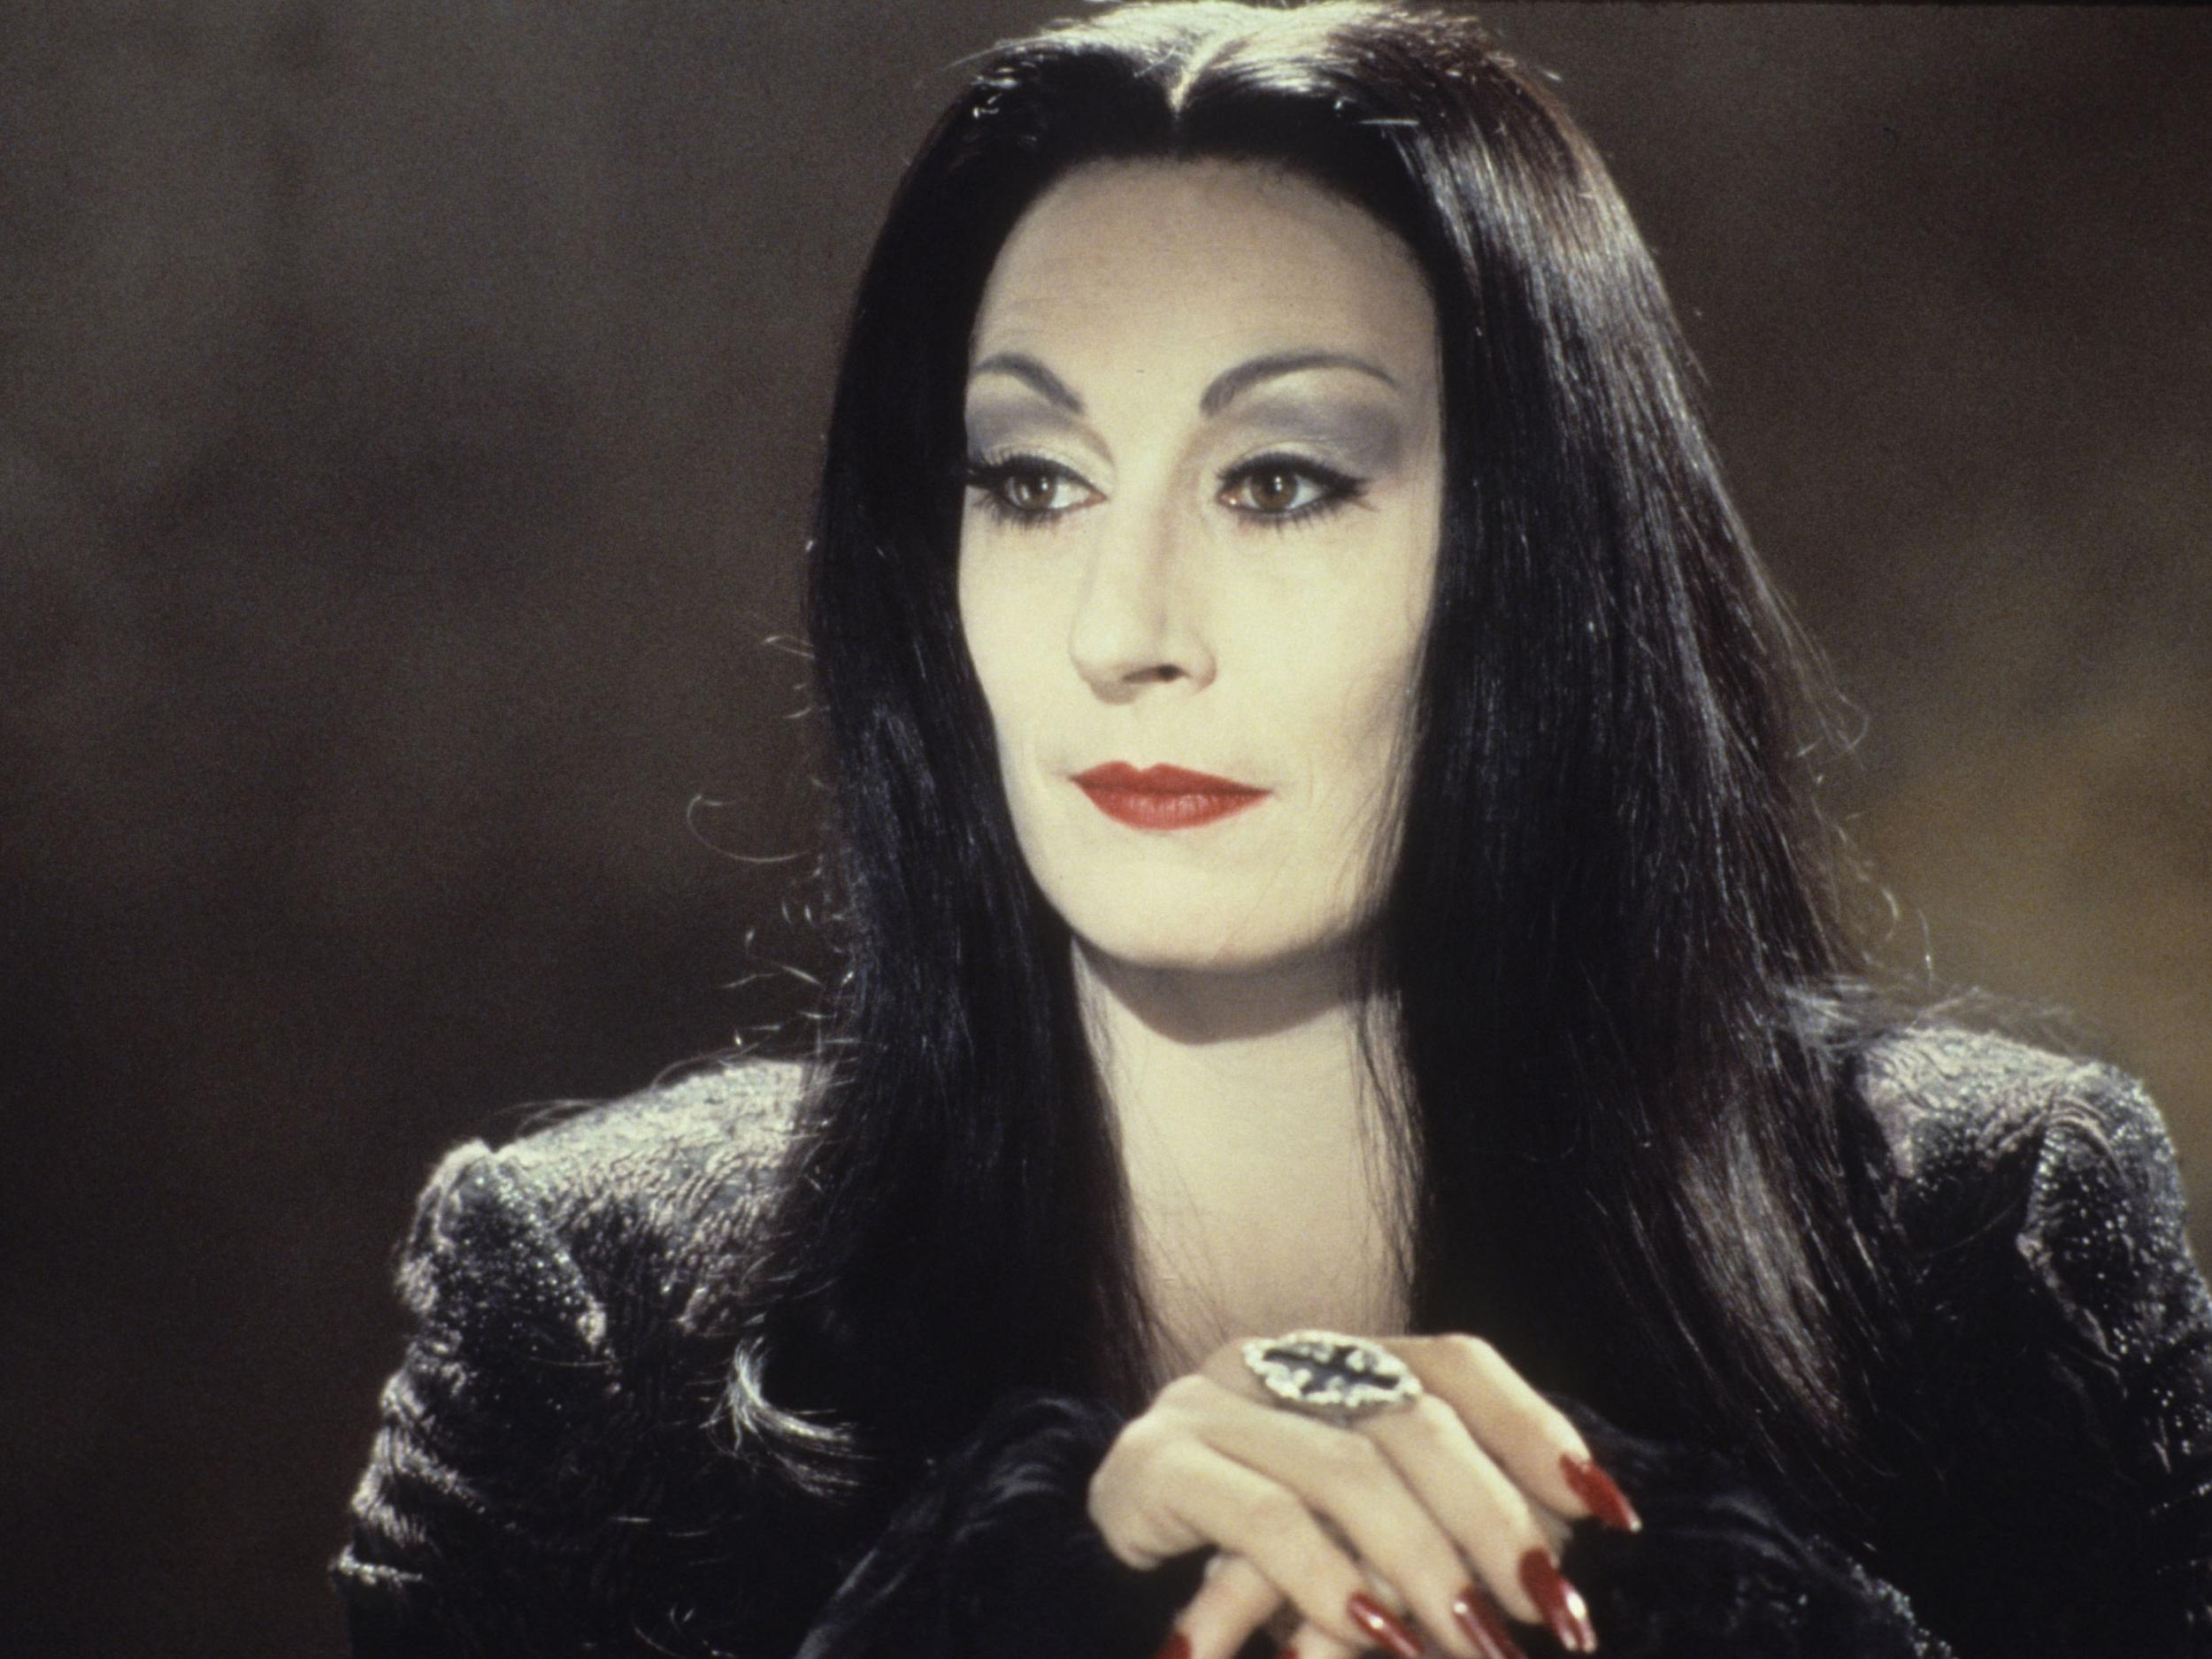 1aagen2 30 Creepy and Kooky Facts About Addams Family Values